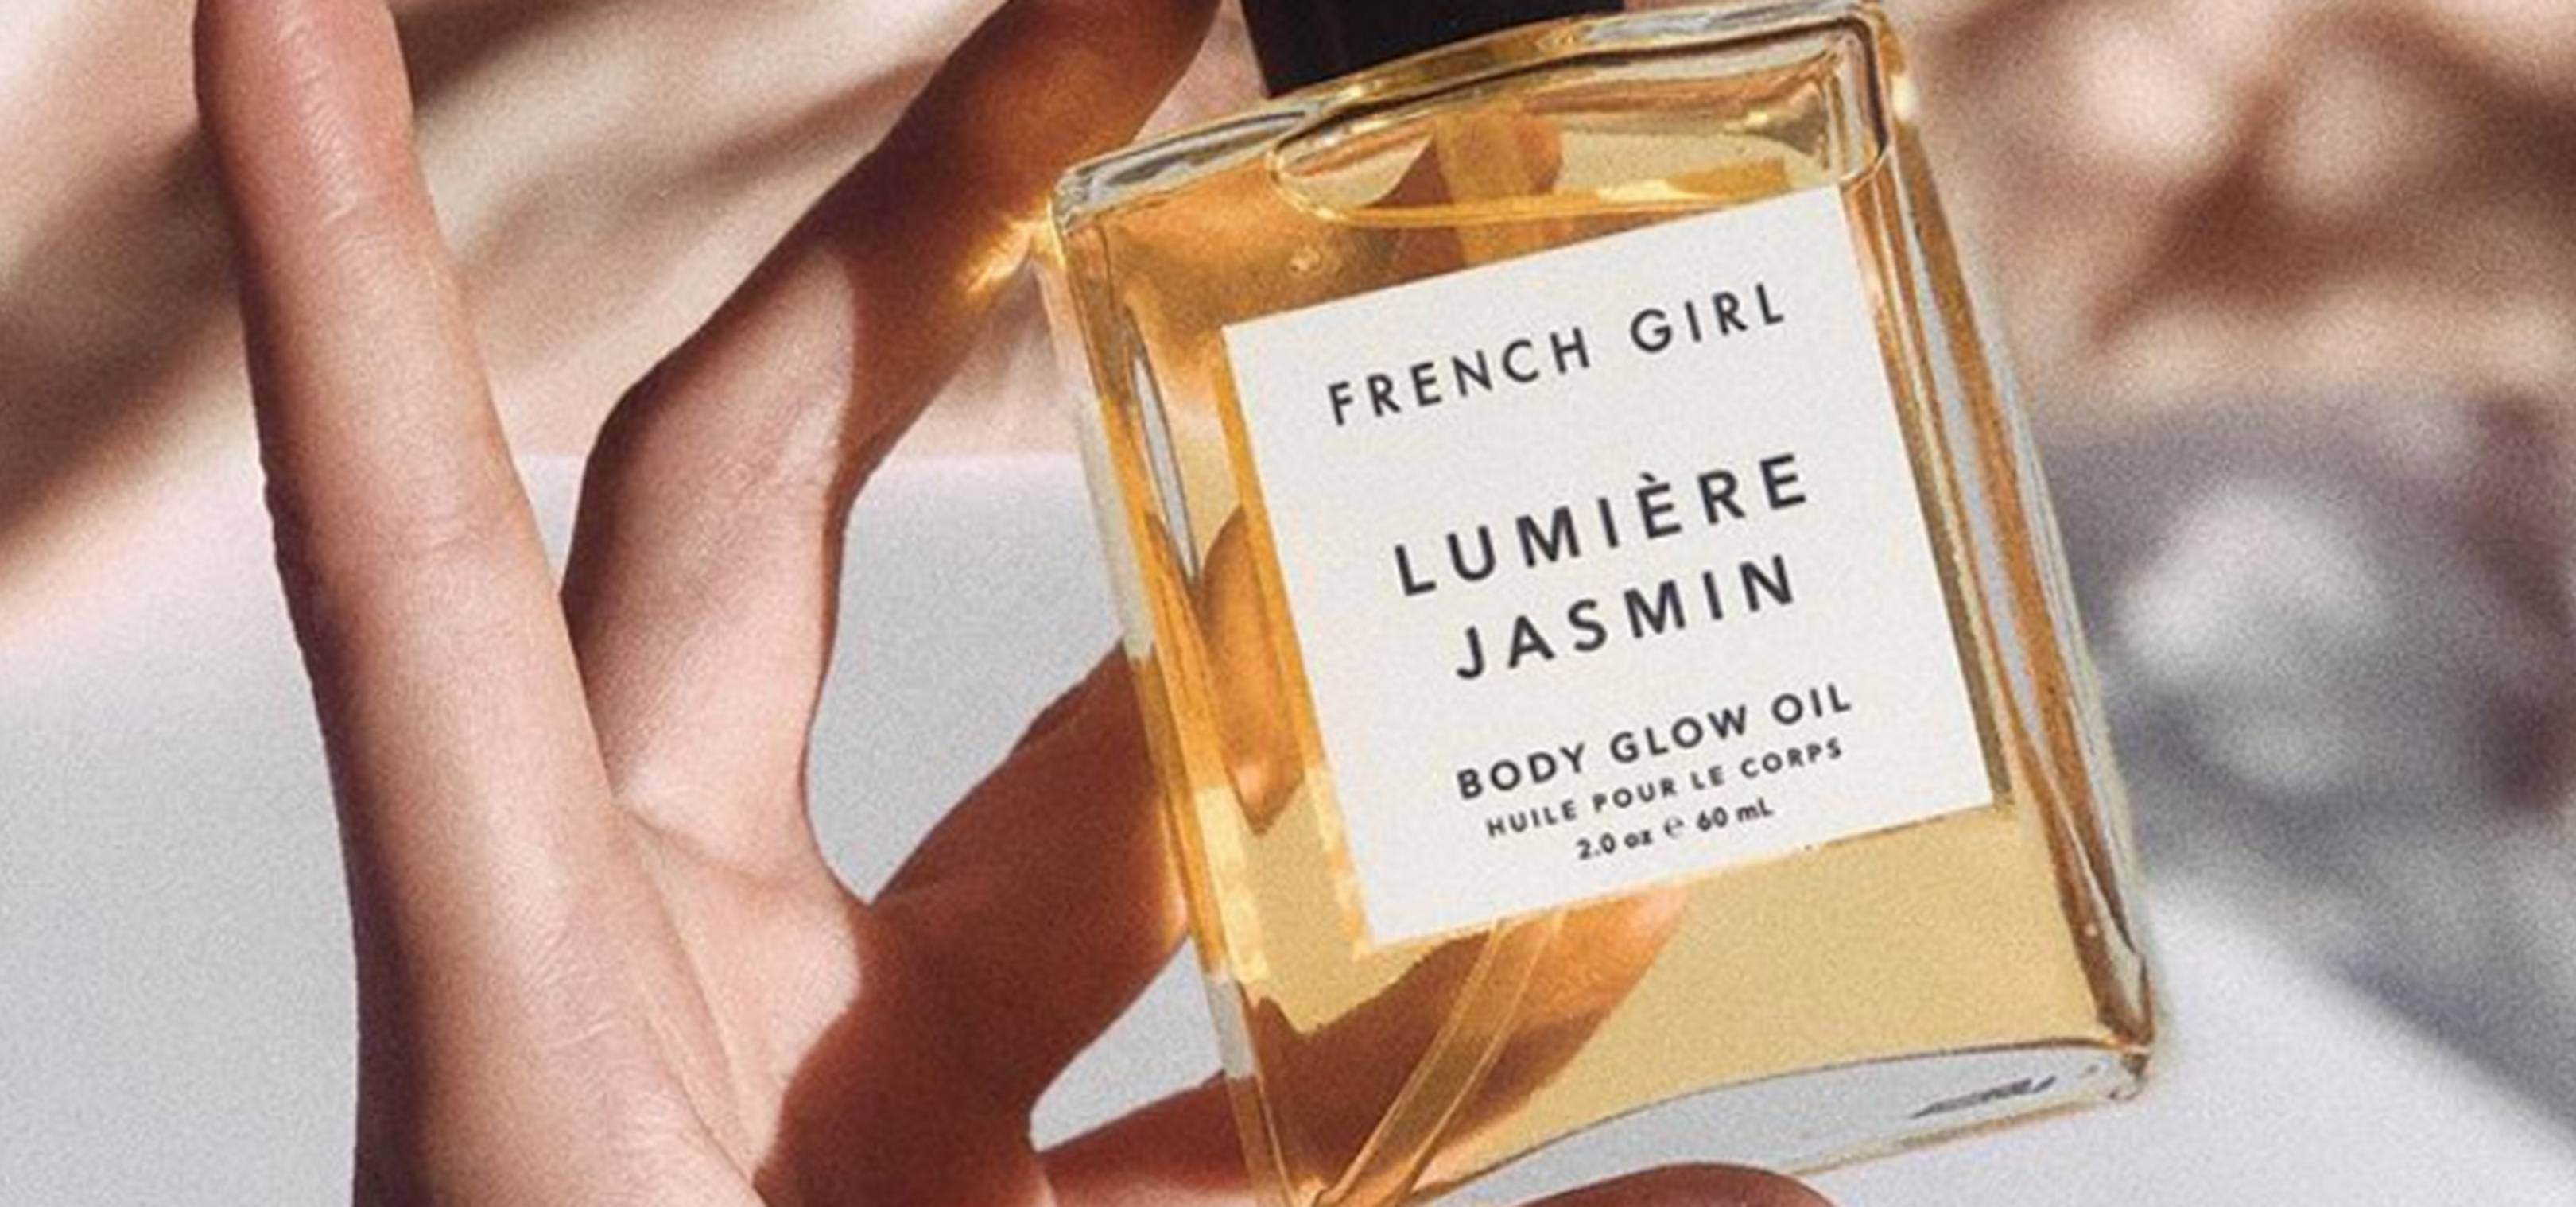 The best body oils to keep your skin smooth, supple and silky-soft